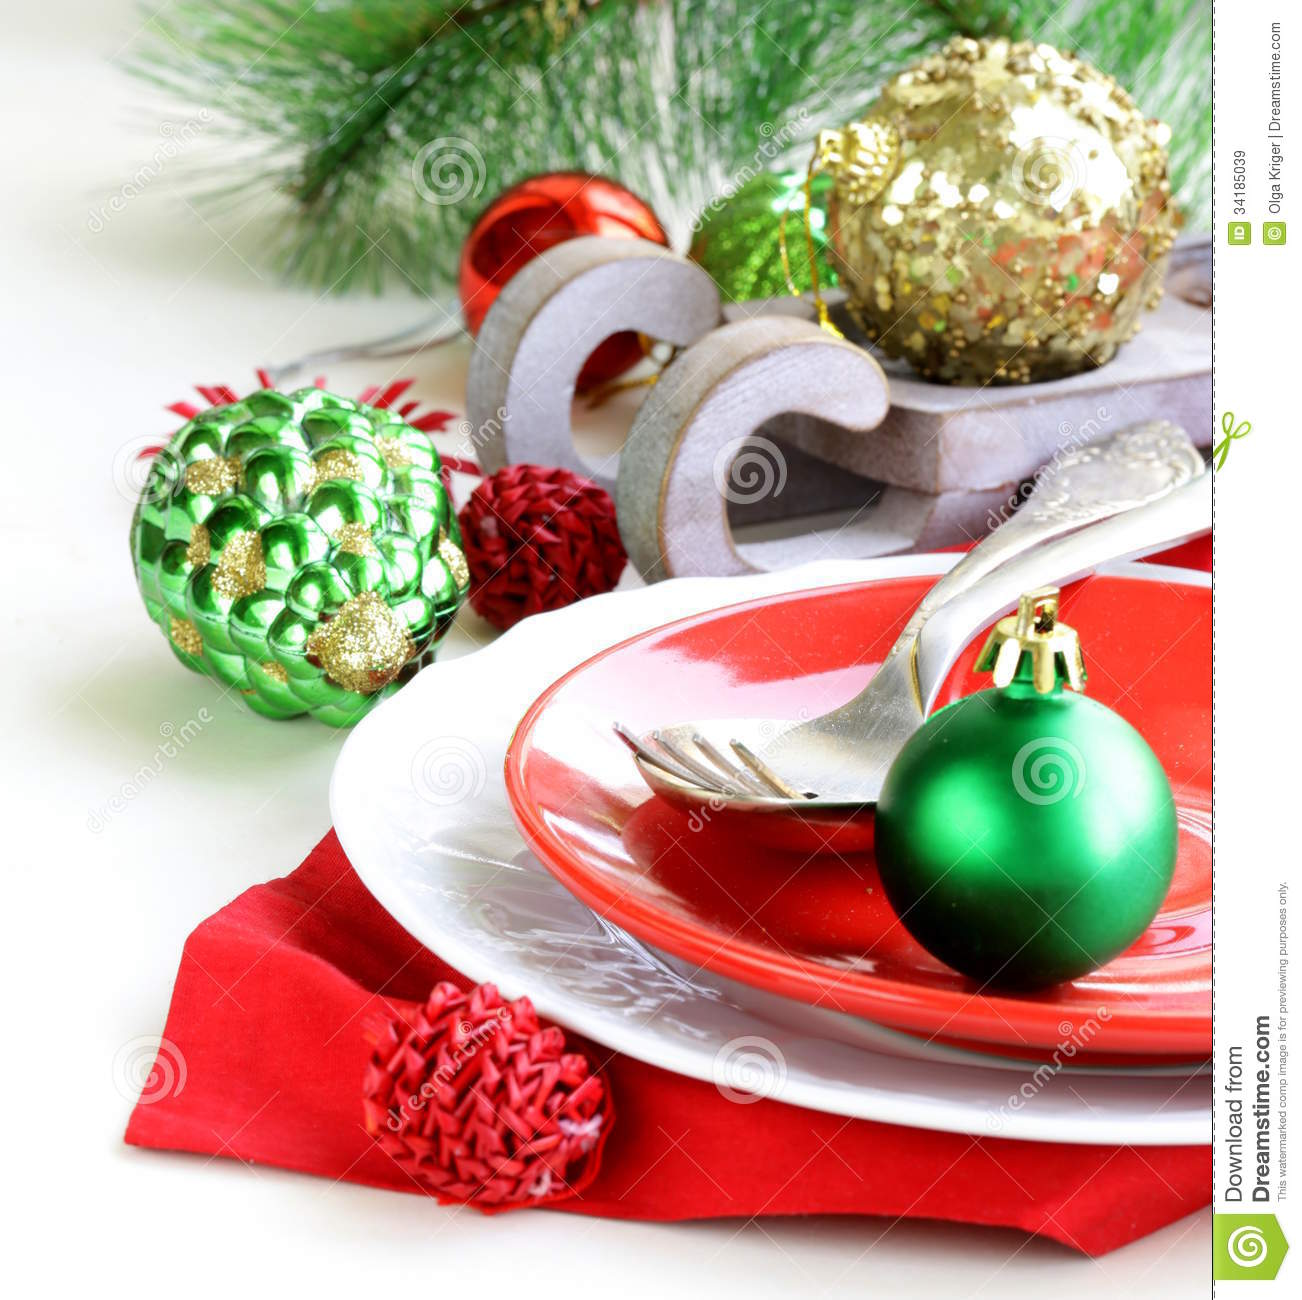 Festive Christmas Table Setting Royalty Free Stock Images - Image ...